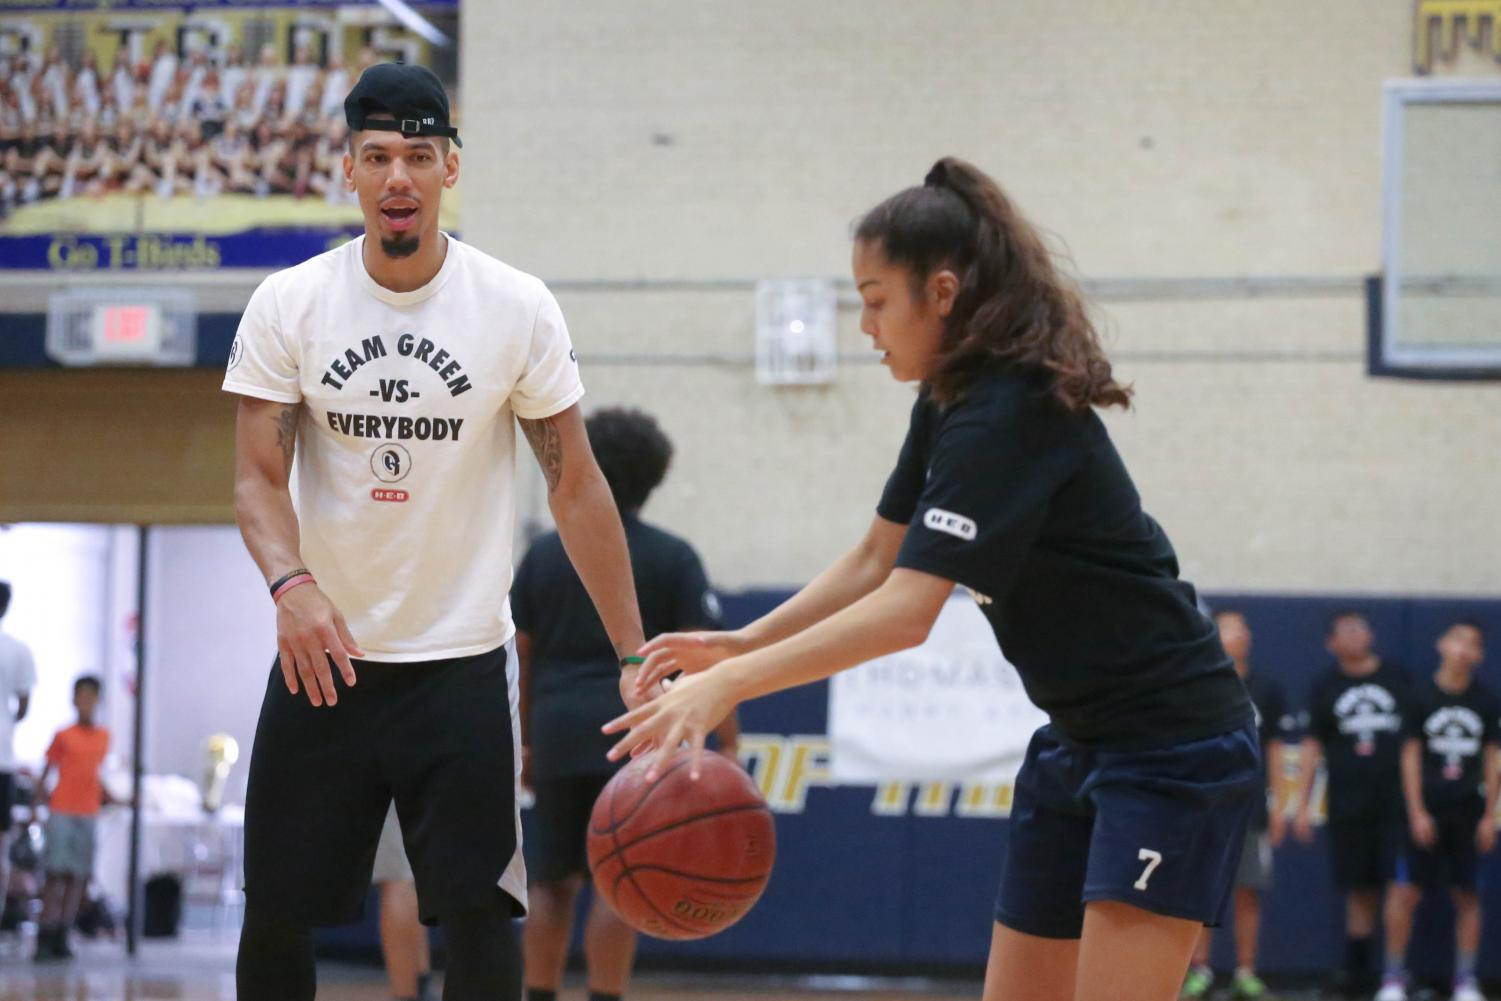 San Antonio Spurs guard/forward Danny Green works on some drills with the kids at his annual Skills Clinic on Saturday, July 7 at Coronado High School.